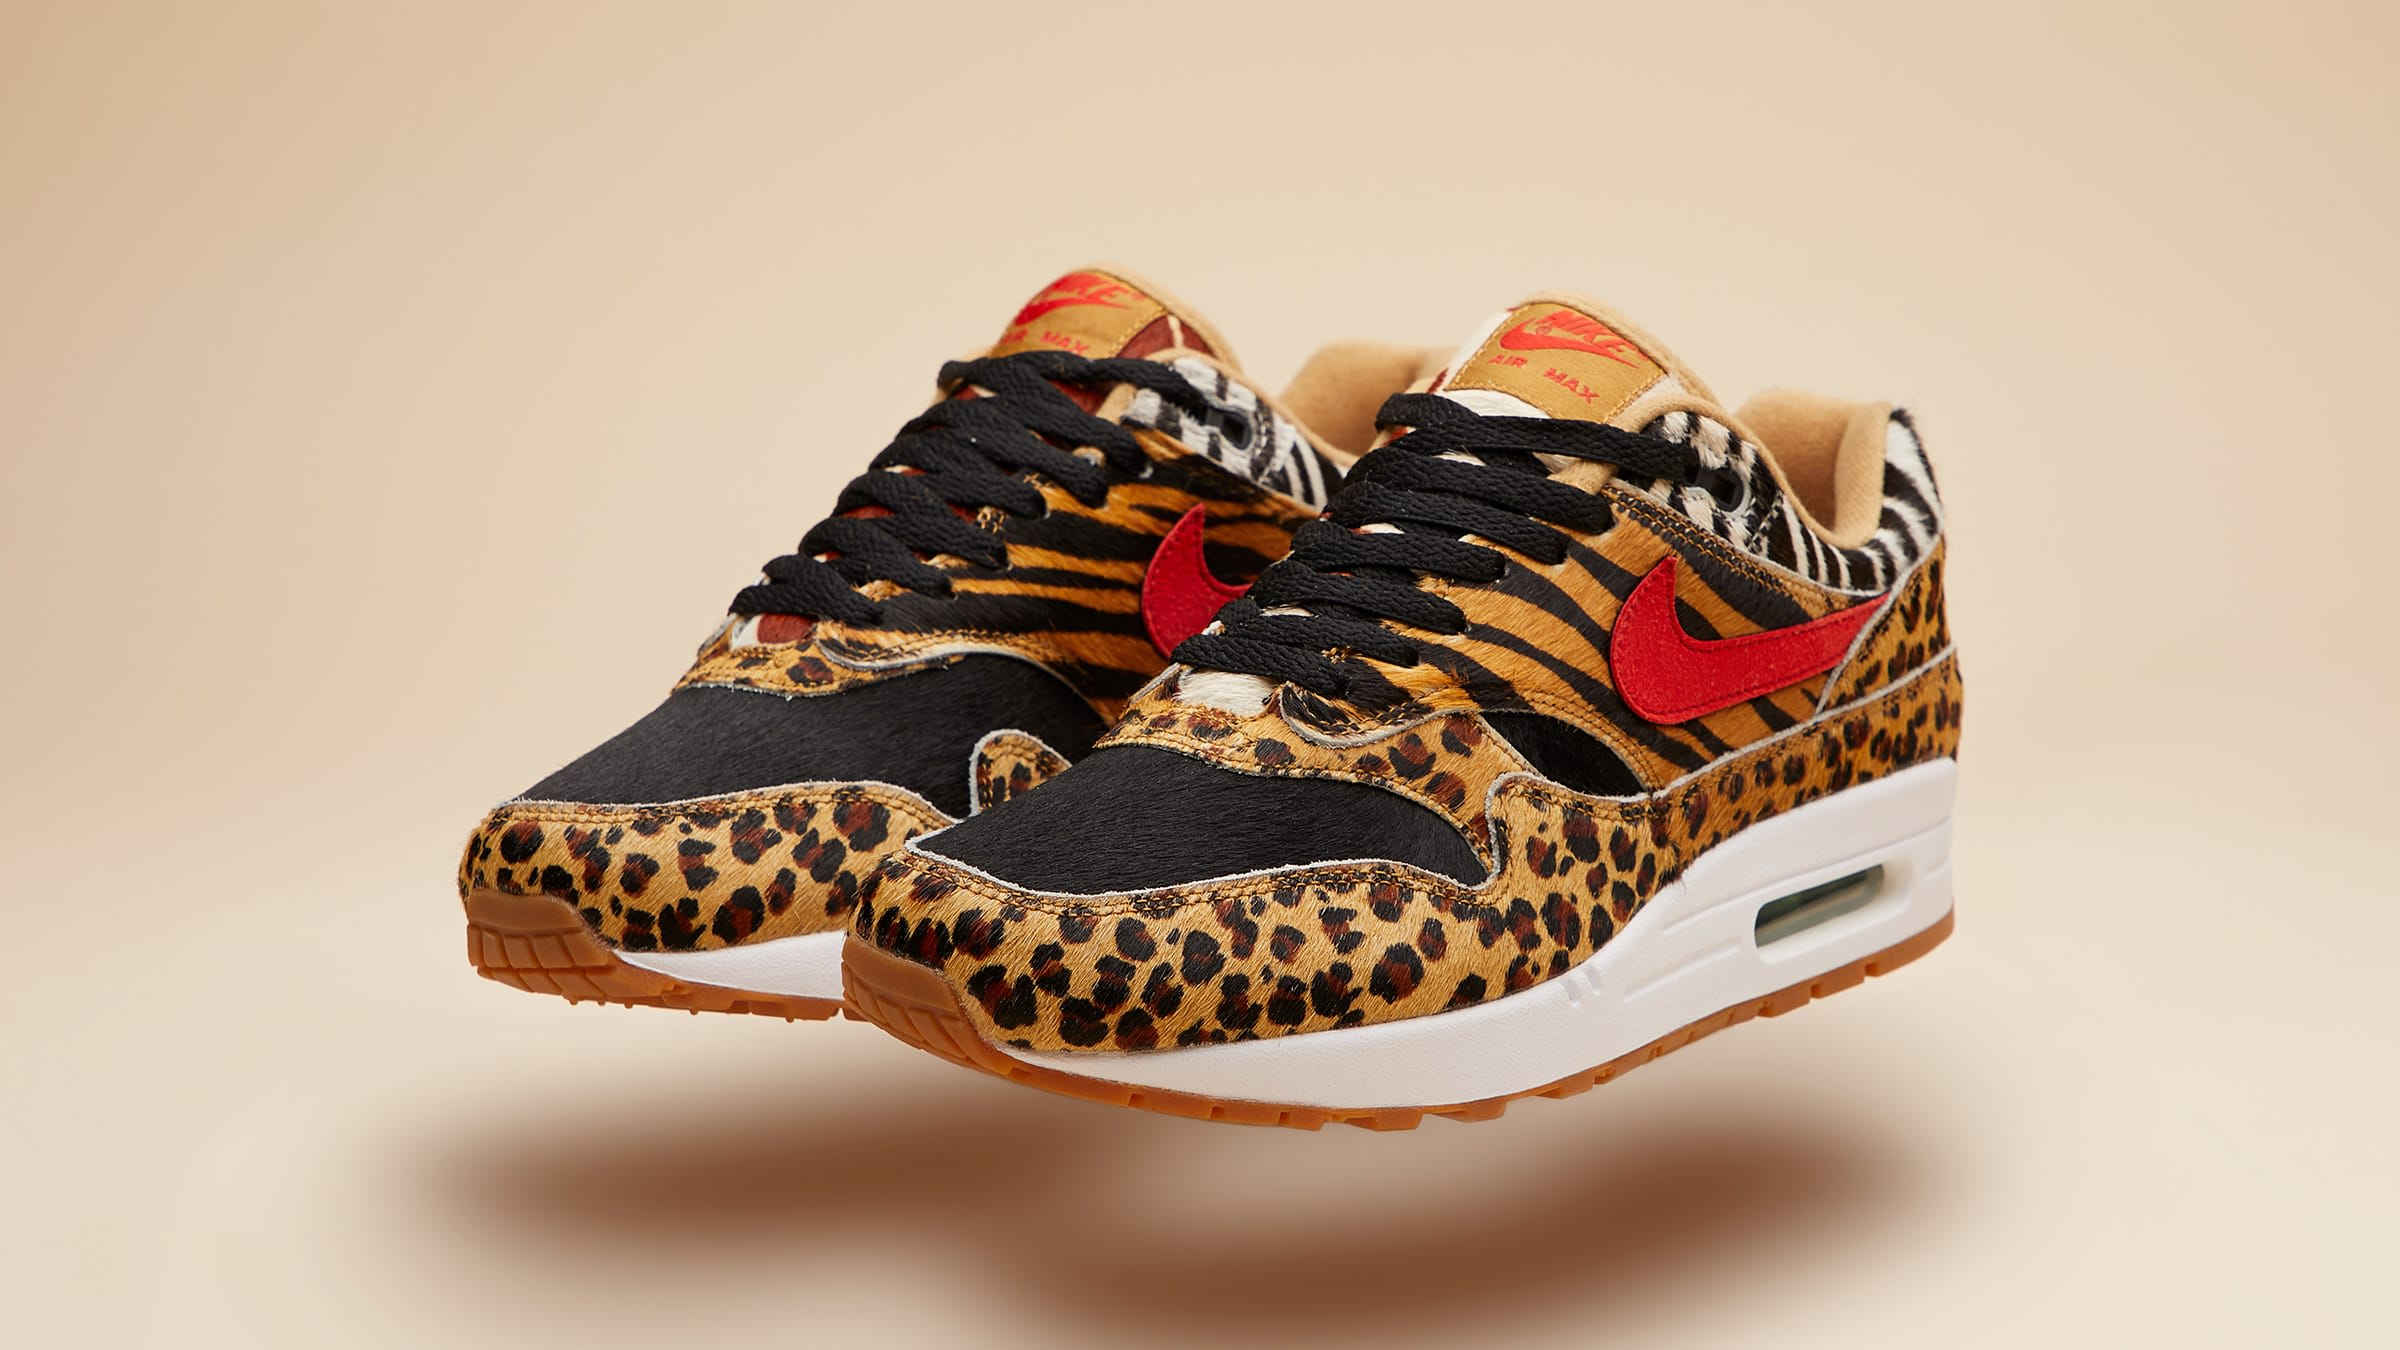 END. Features | Nike Air Max Day 'Beast' Coming Soon to END.